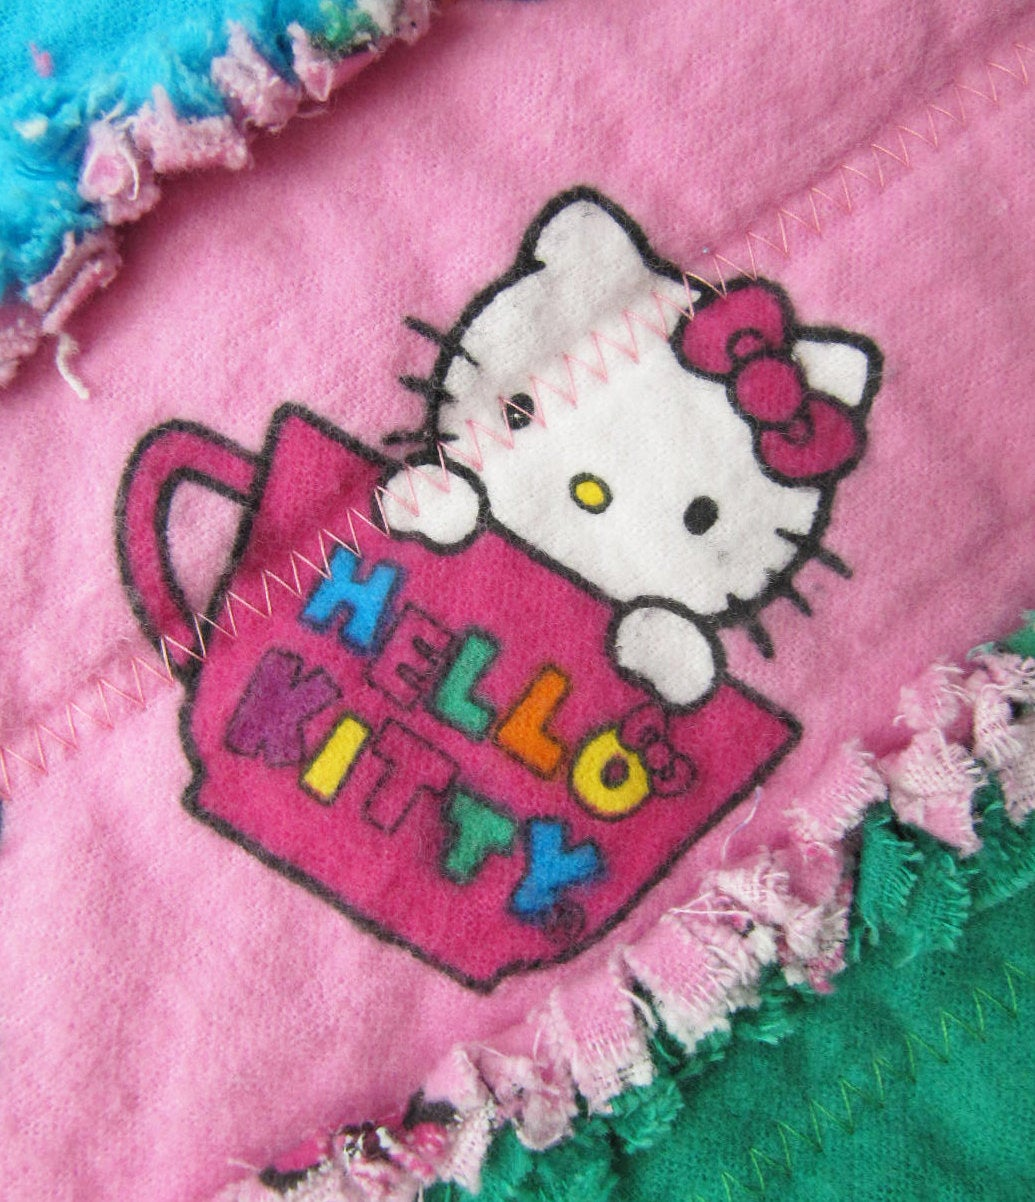 Hello Kitty Baby Quilt for Baby Girl in pink and rainbow - baby girl blanket, crib/nursery rag quilt, jelly roll quilt, baby shower gift